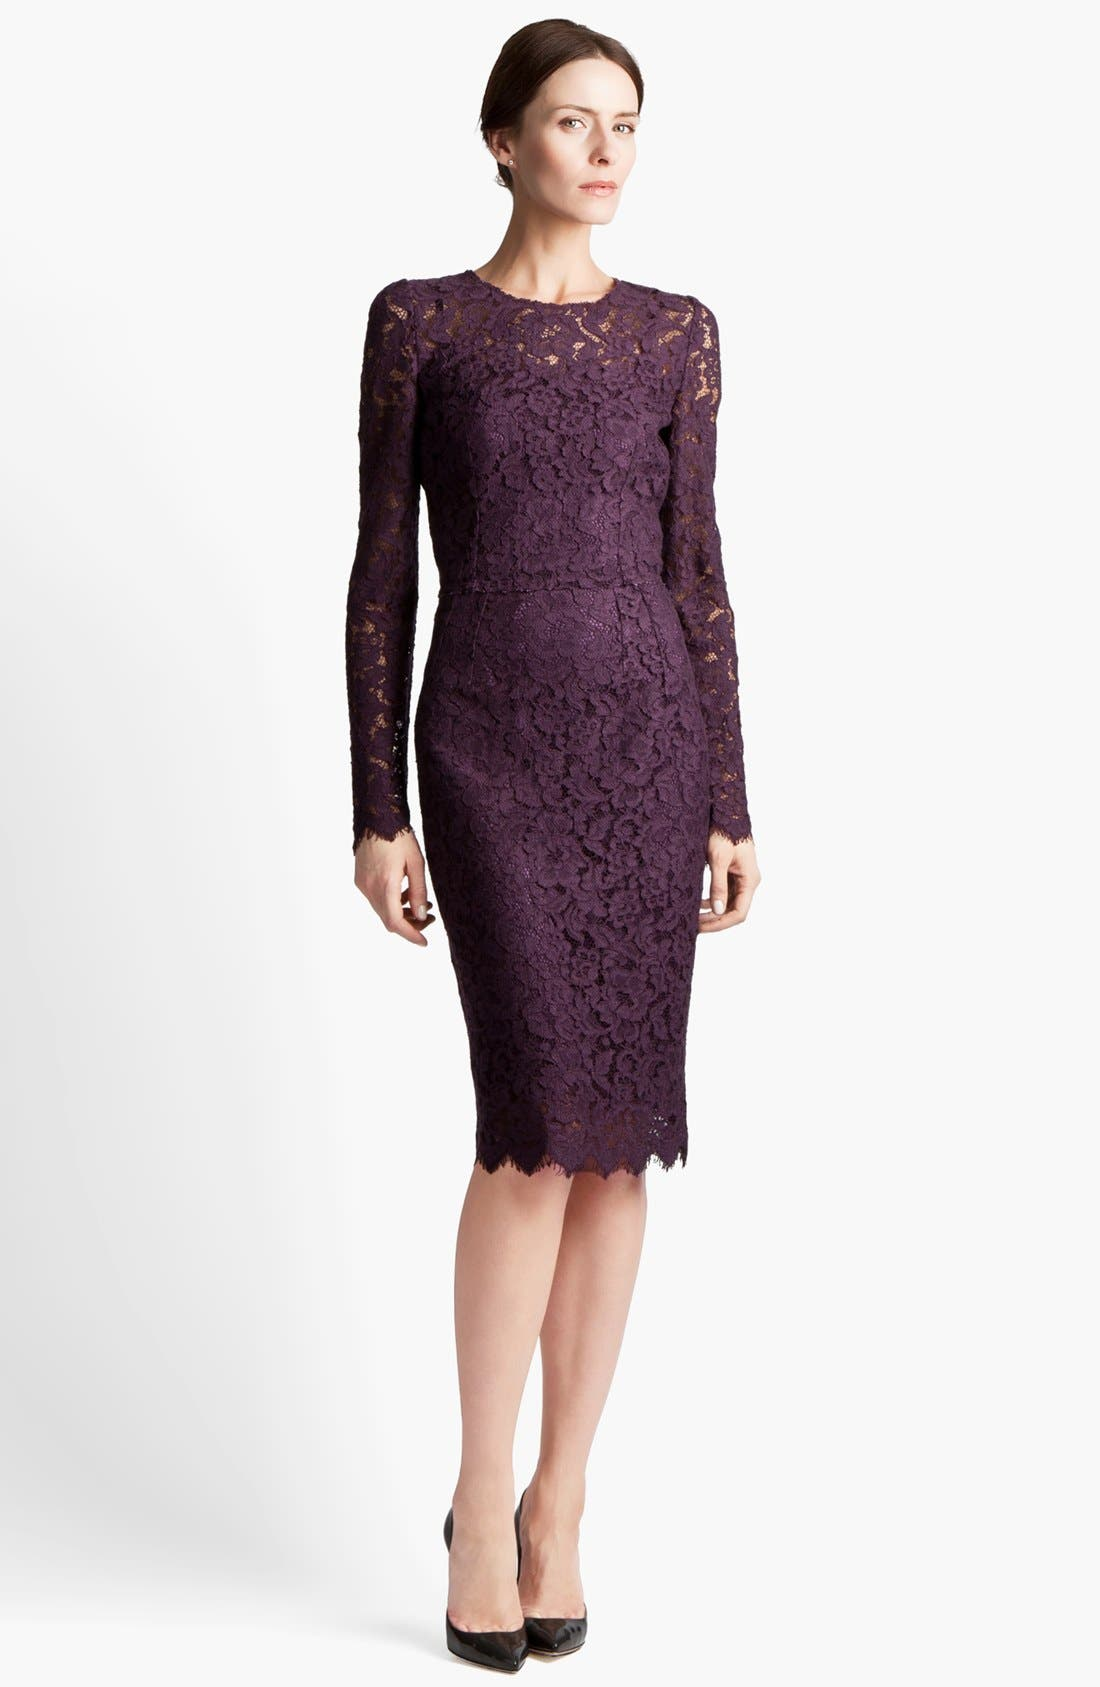 Main Image - Dolce&Gabbana Lace Dress